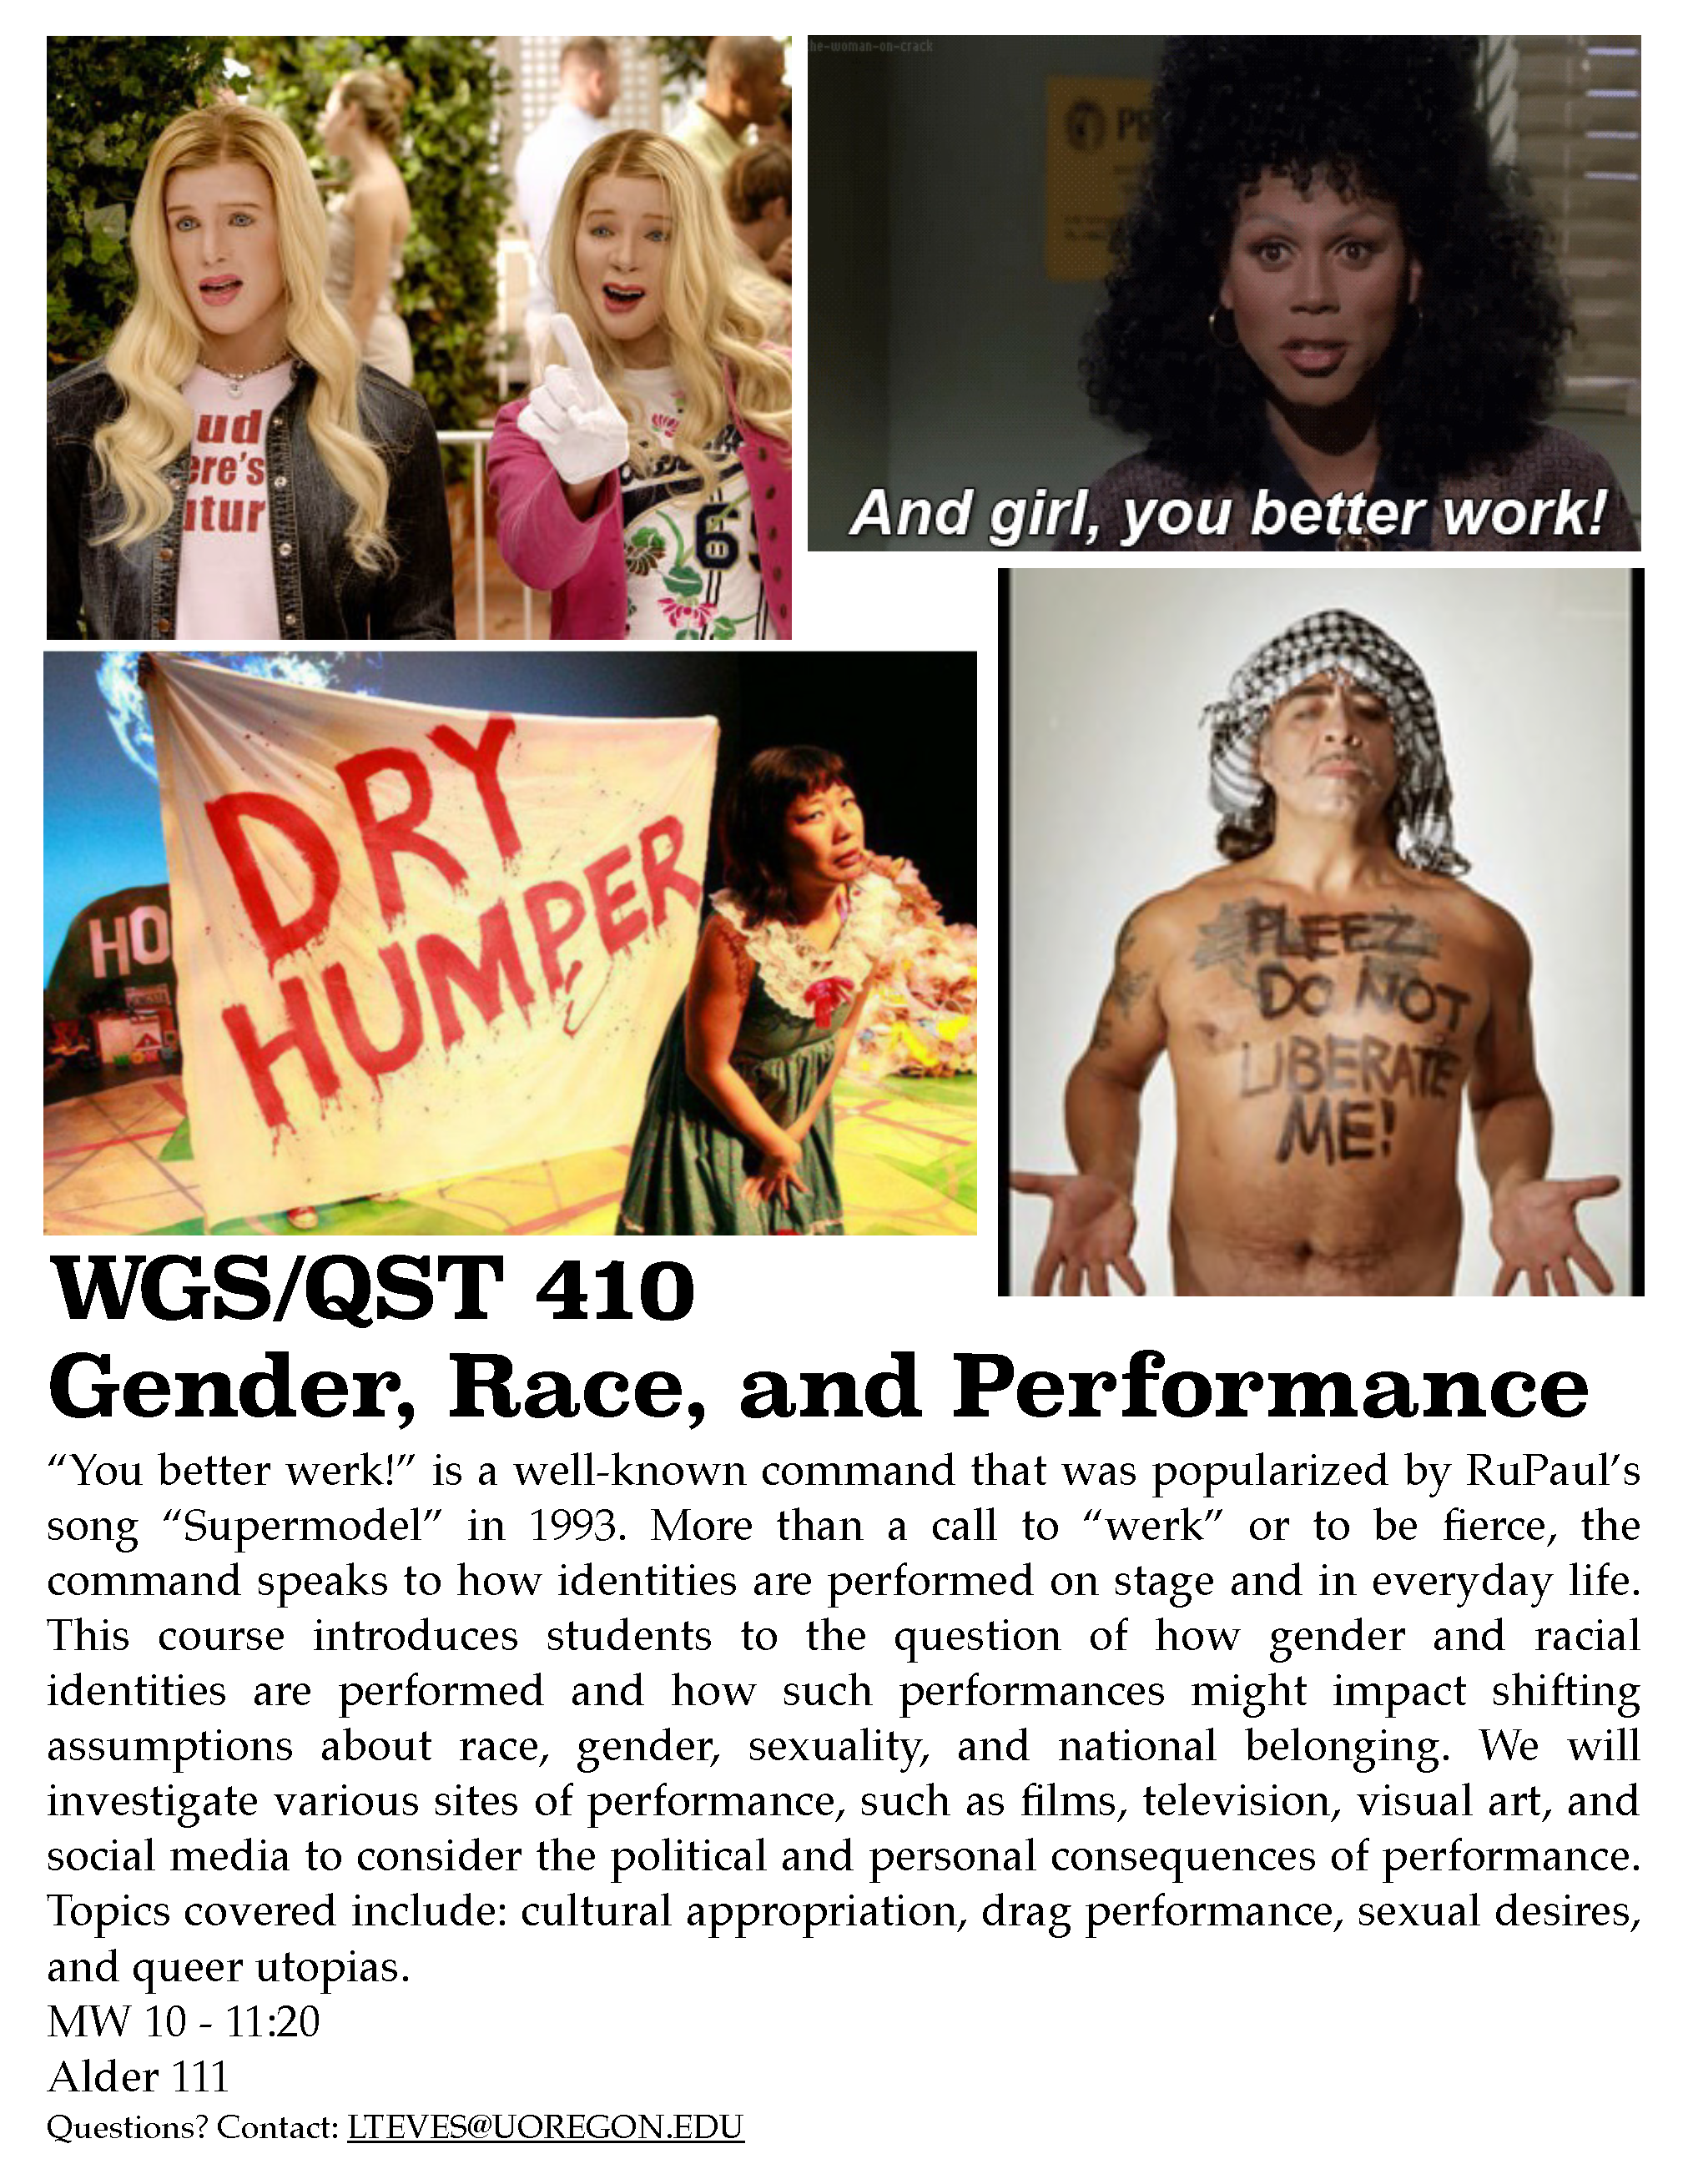 Flyer for WGS 410